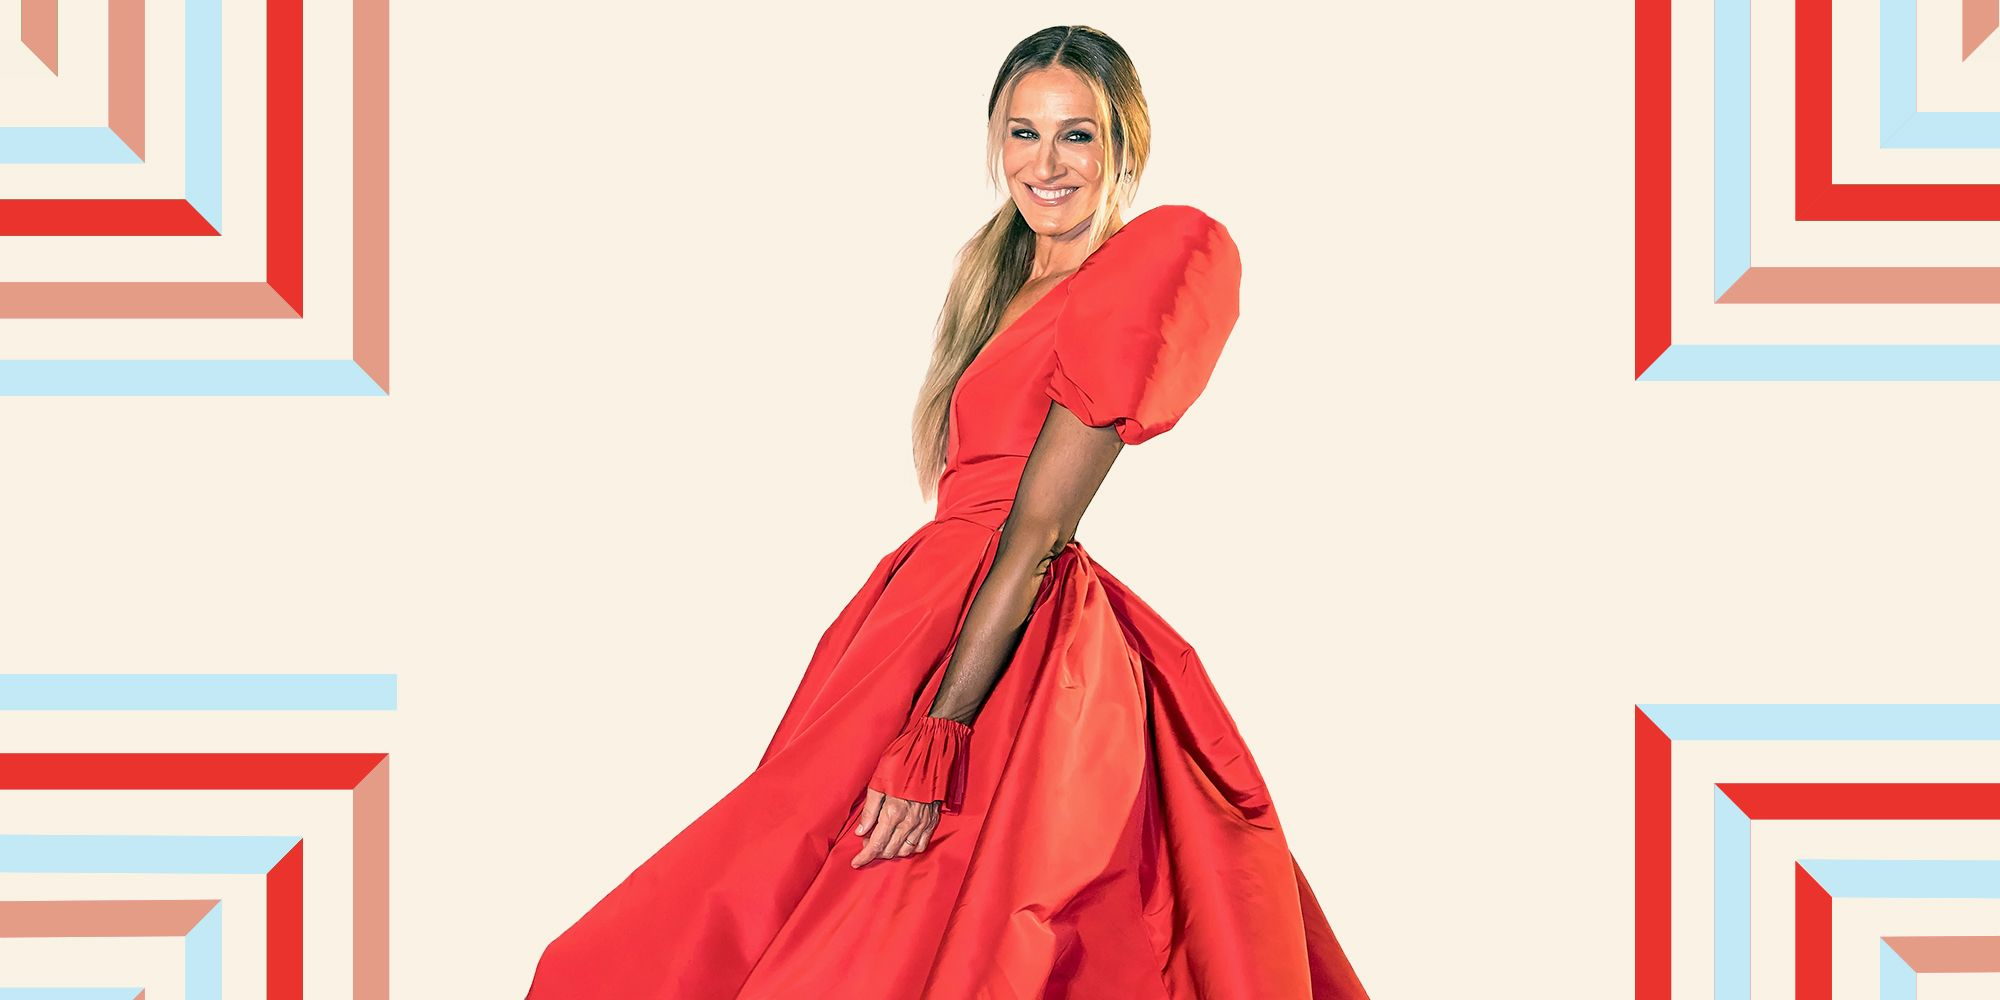 Sarah Jessica Parker Dazzles In A Dramatic Red Gown At New York City Ballet